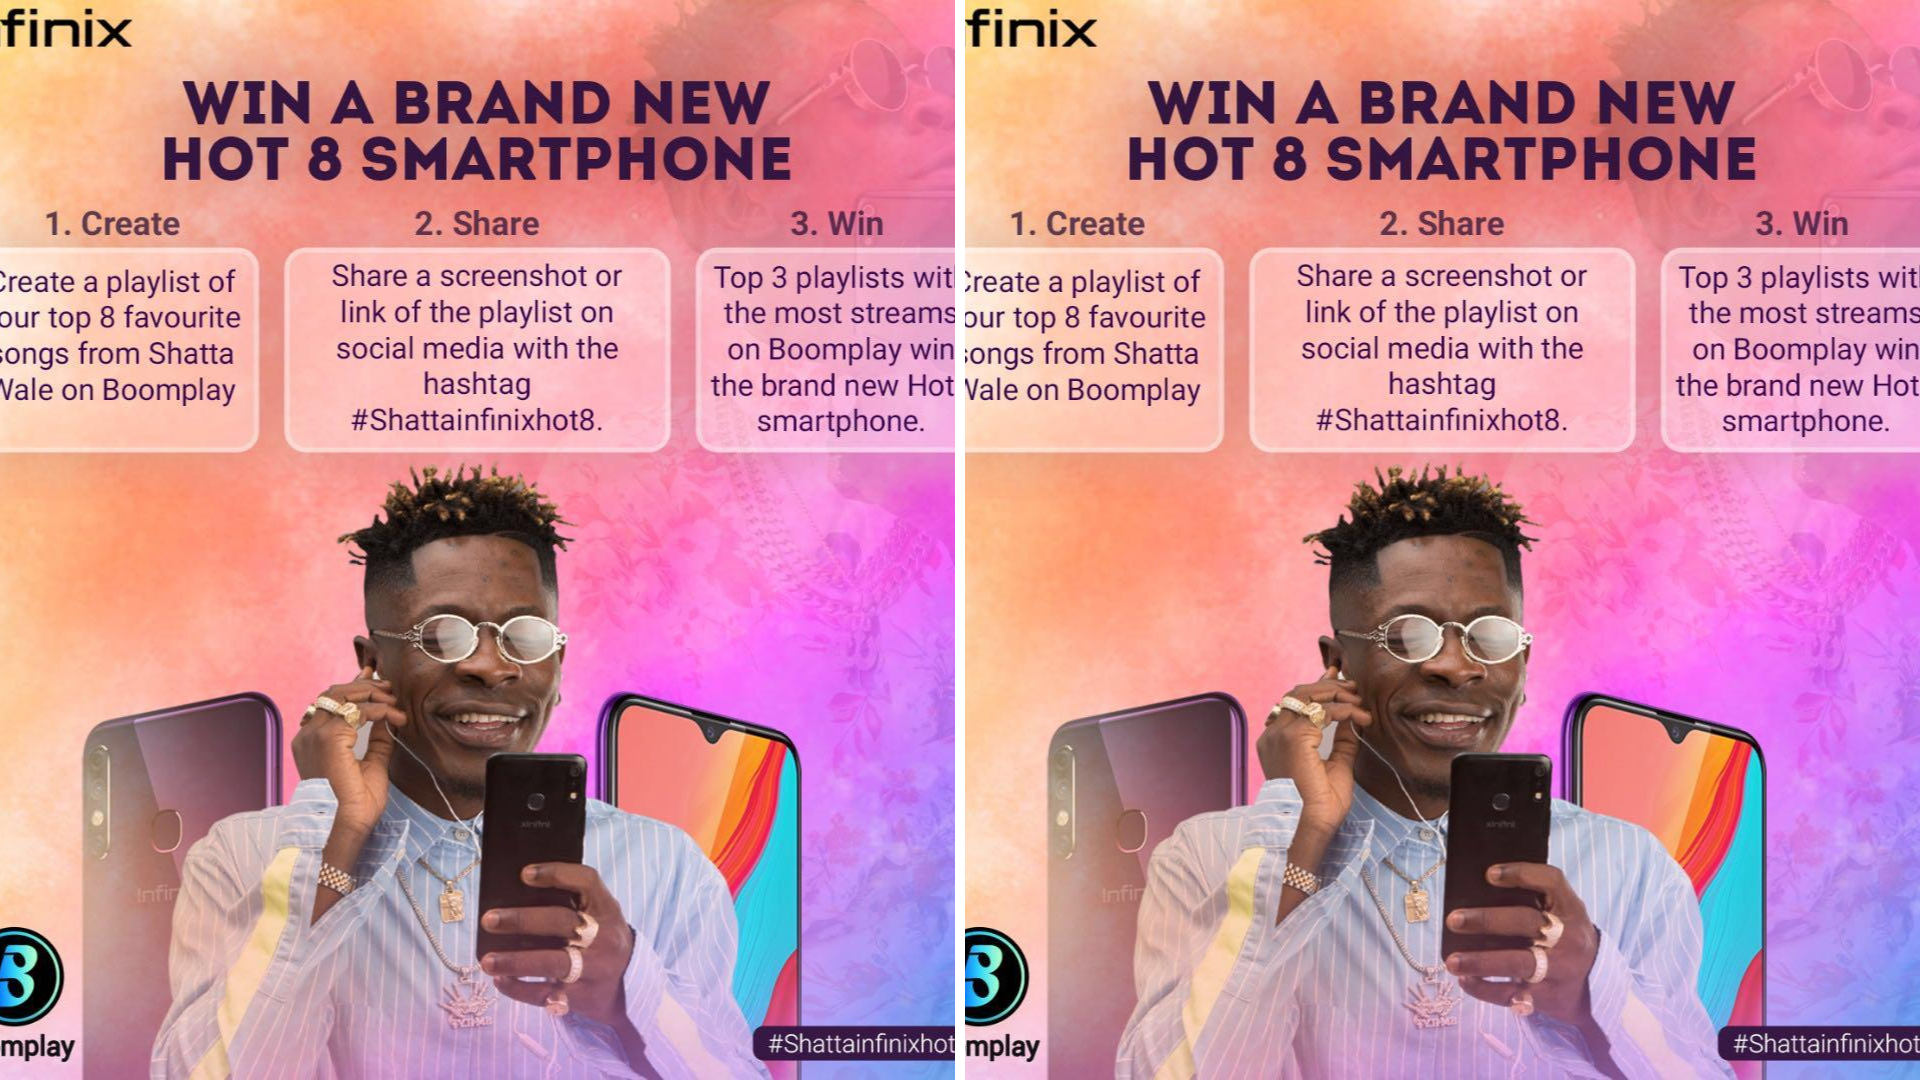 How to win a Brand new Infinix Hot 8 Smartphone from Shatta Wale